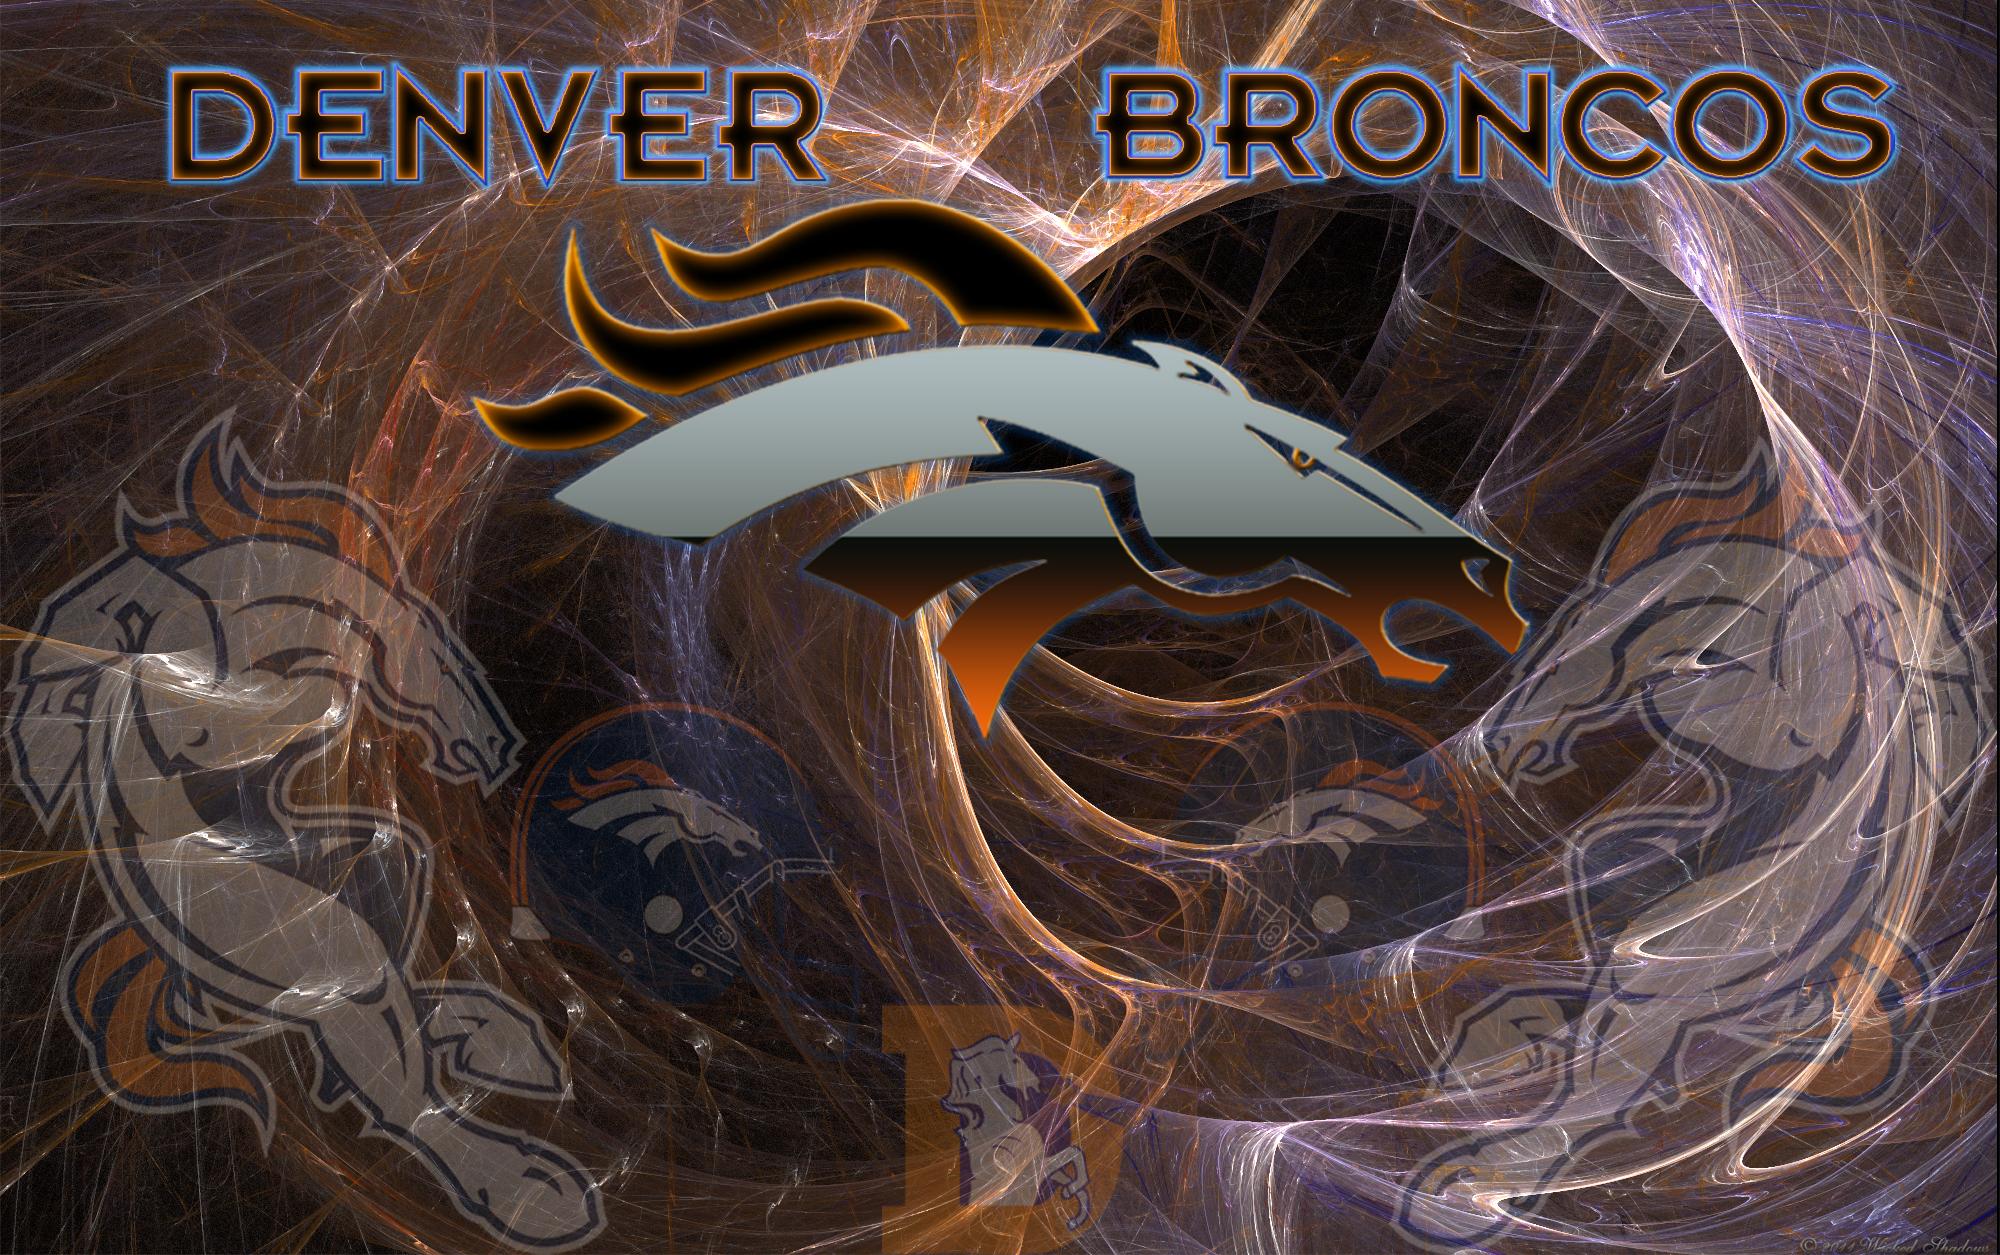 Wallpapers by wicked shadows denver broncos wild wallpaper - Denver broncos background ...